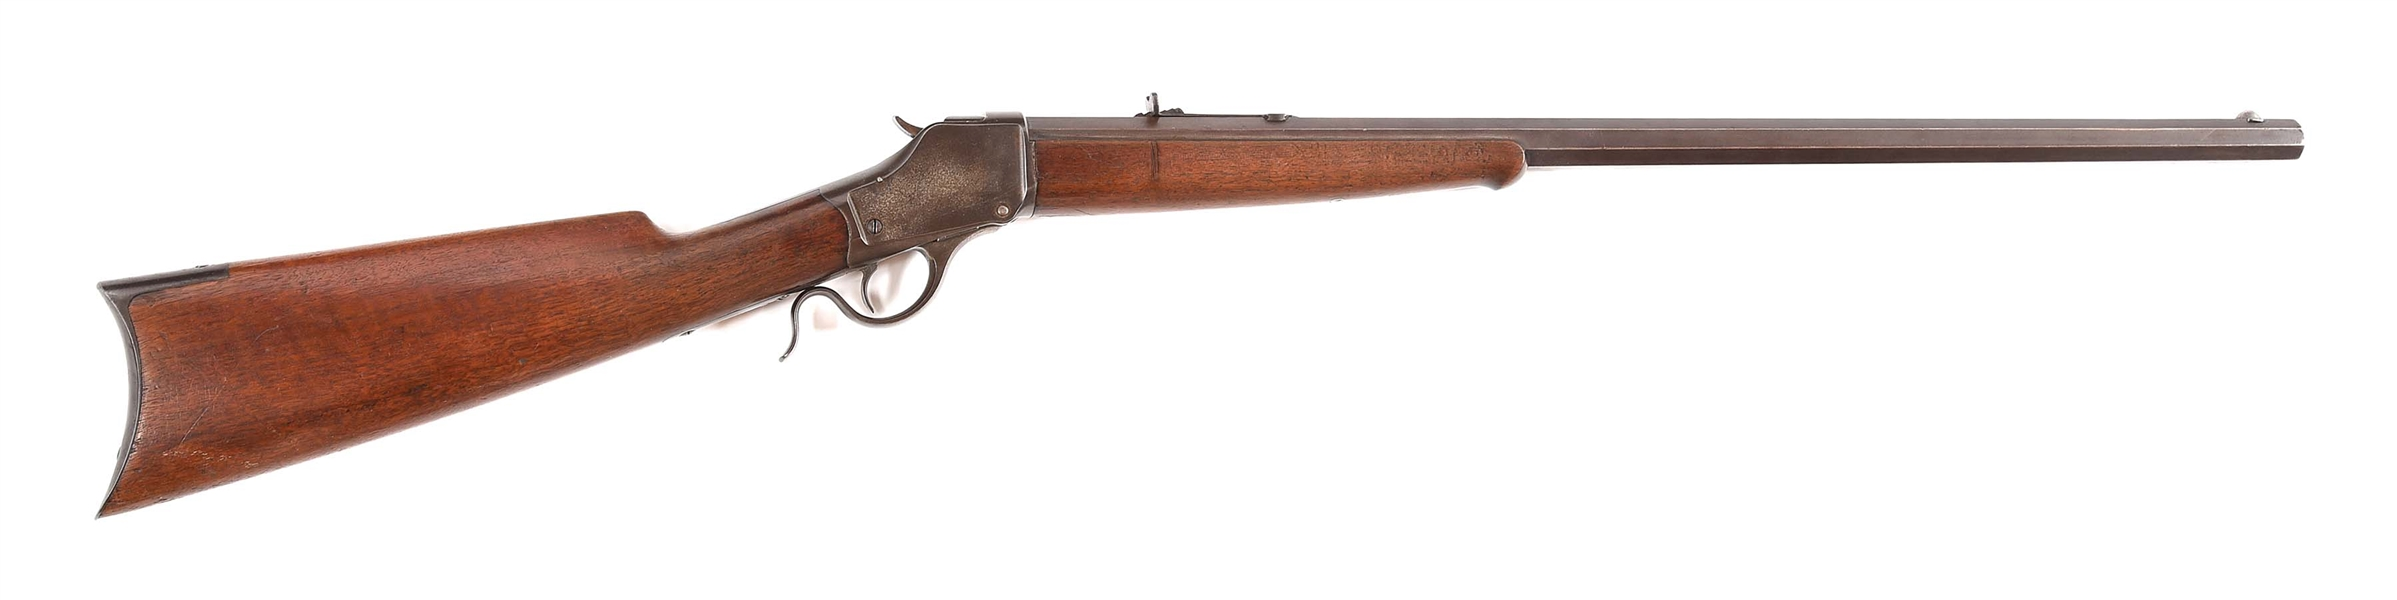 (A) WINCHESTER MODEL 1885 .38-55 SINGLE SHOT RIFLE.